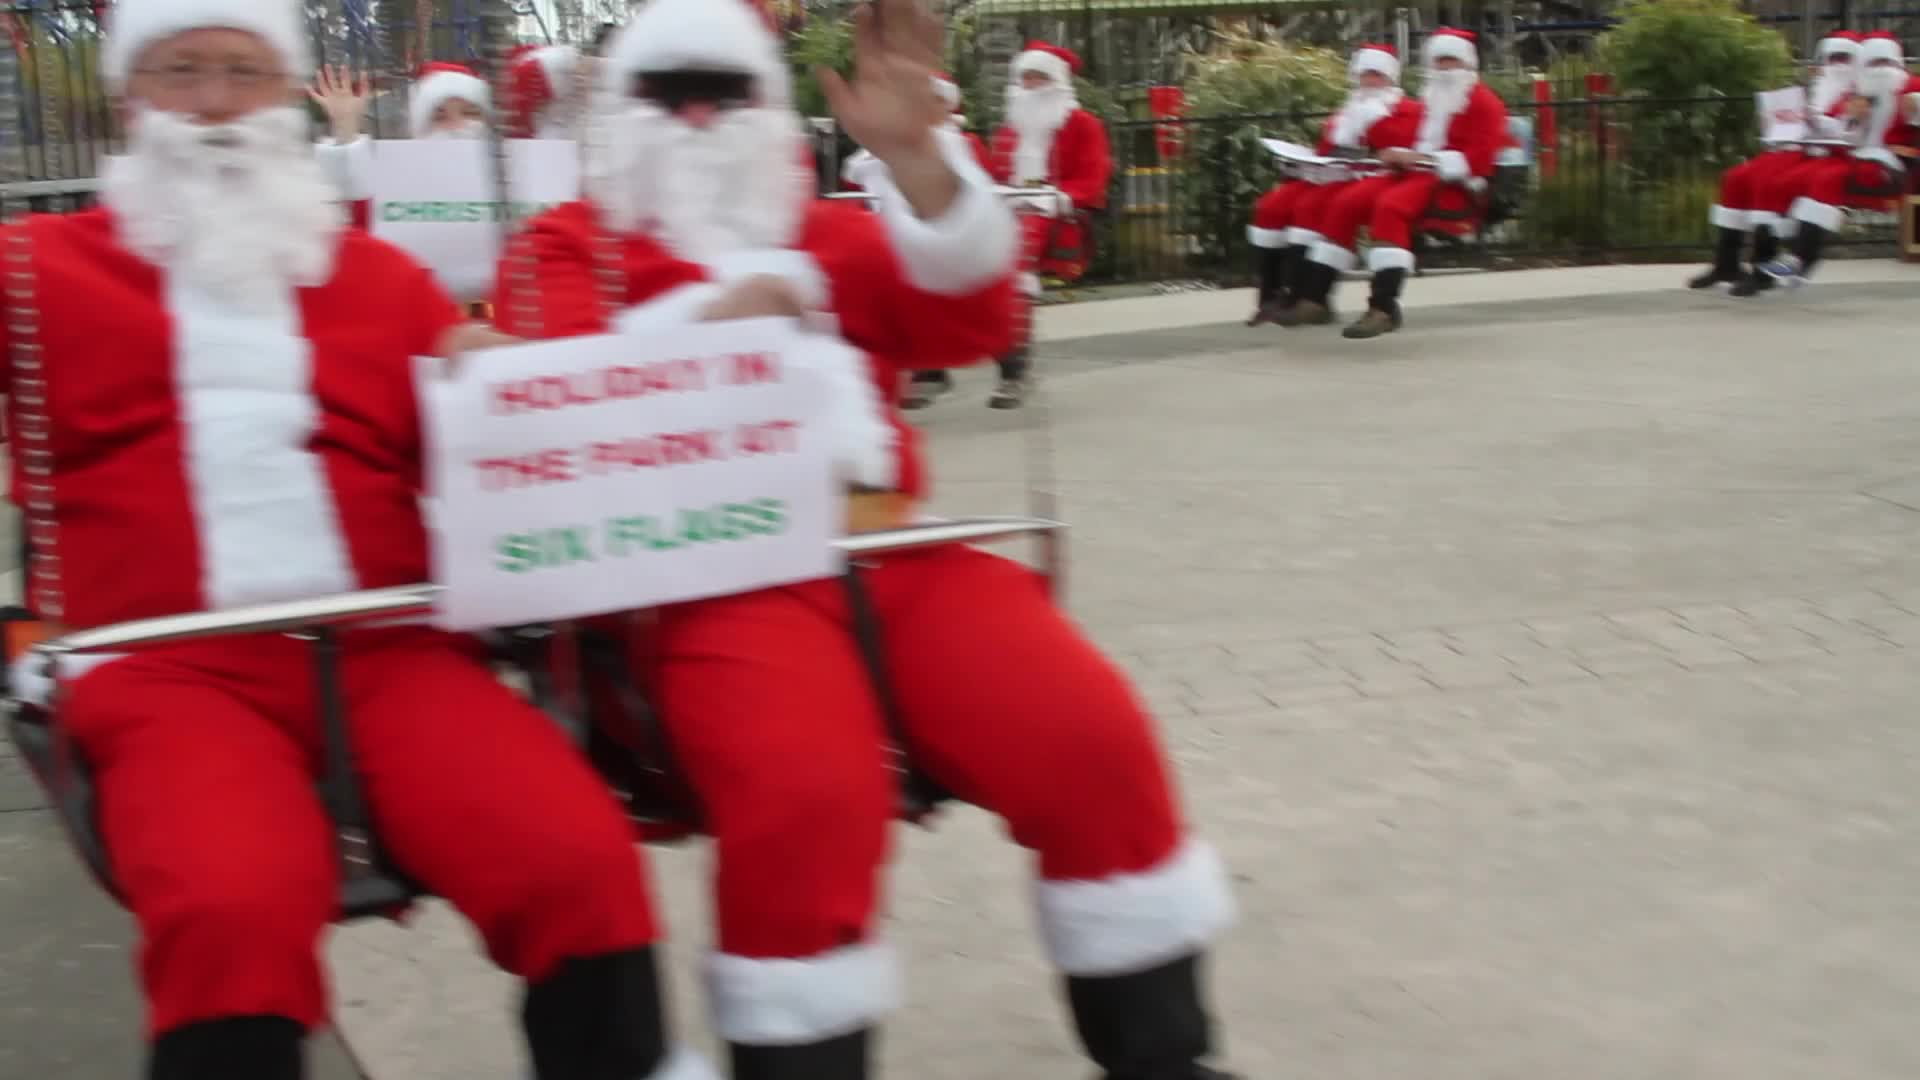 Thirty-two jolly Santas took over the SkyScreamer tower ride at Six Flags Discovery Kingdom as part of a Six Flags Flying Santas Day in conjunction with its sister parks in Arlington and San Antonio. Lively and animated Santas of all shapes and sizes prodded their invisible Comets, Prancer, Donners and Blitzens to the top of the 150' tower swing ride in celebration of the holidays and the park's annual Holiday in the Park celebration.